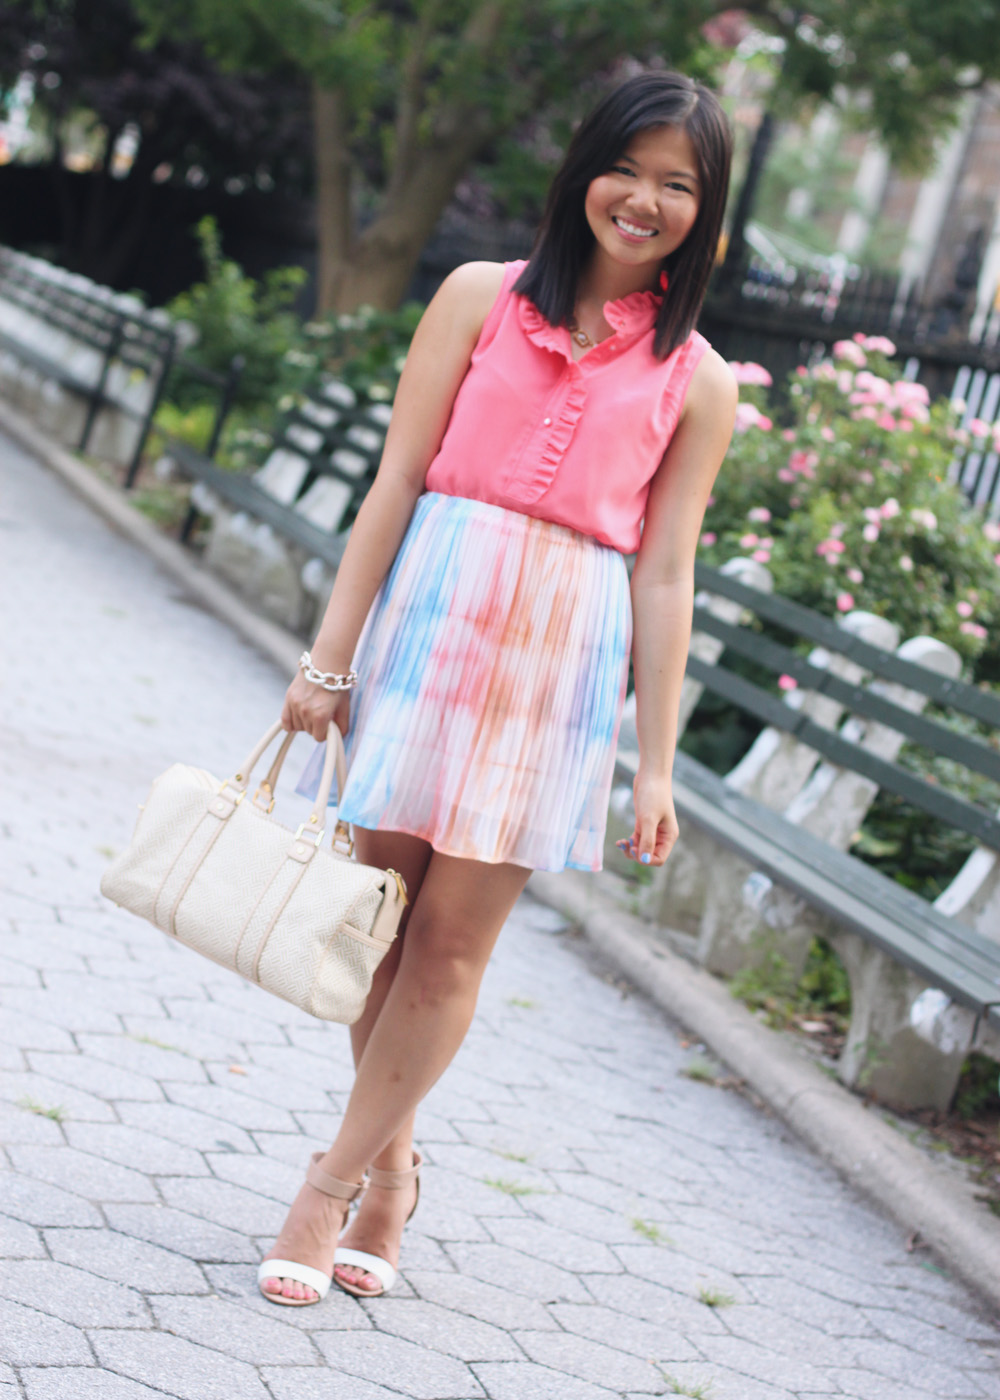 dd454c51cb Skirt The Rules Blog  NYC fashion blogger  style blog  summer outfit  photos  ...